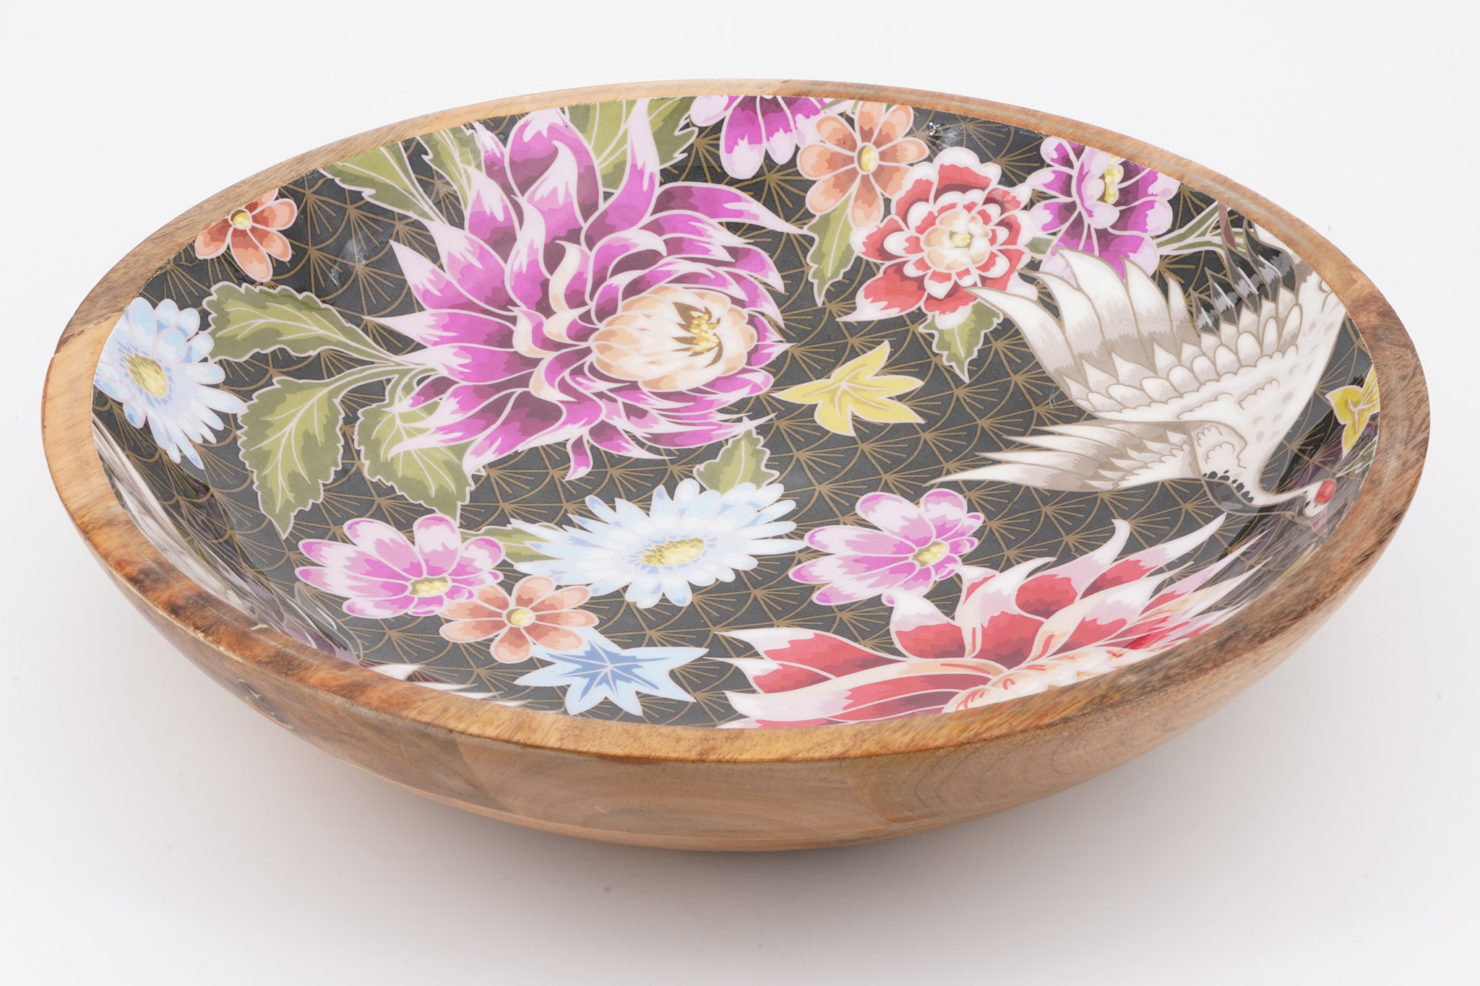 BOWL LOTUS/CRANE MANGO WOOD 38 CM - BY ROOM